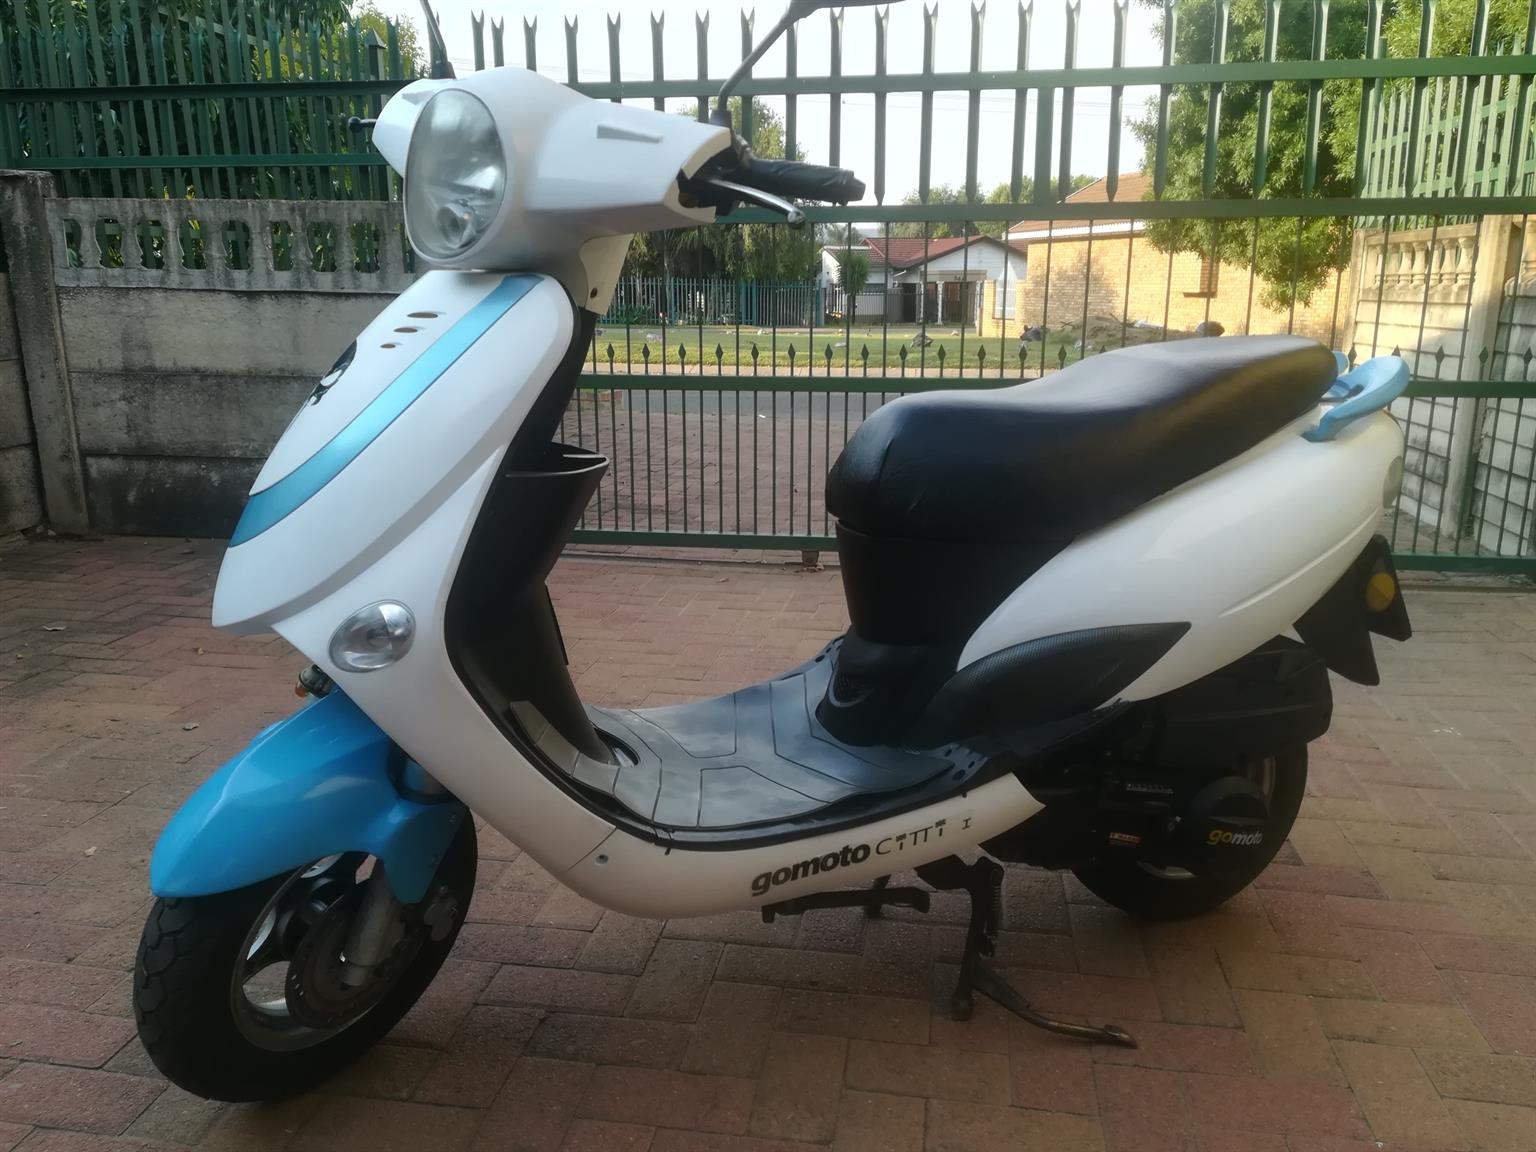 SELLING GOMOTO CITY JET 150 CC SCOOTER